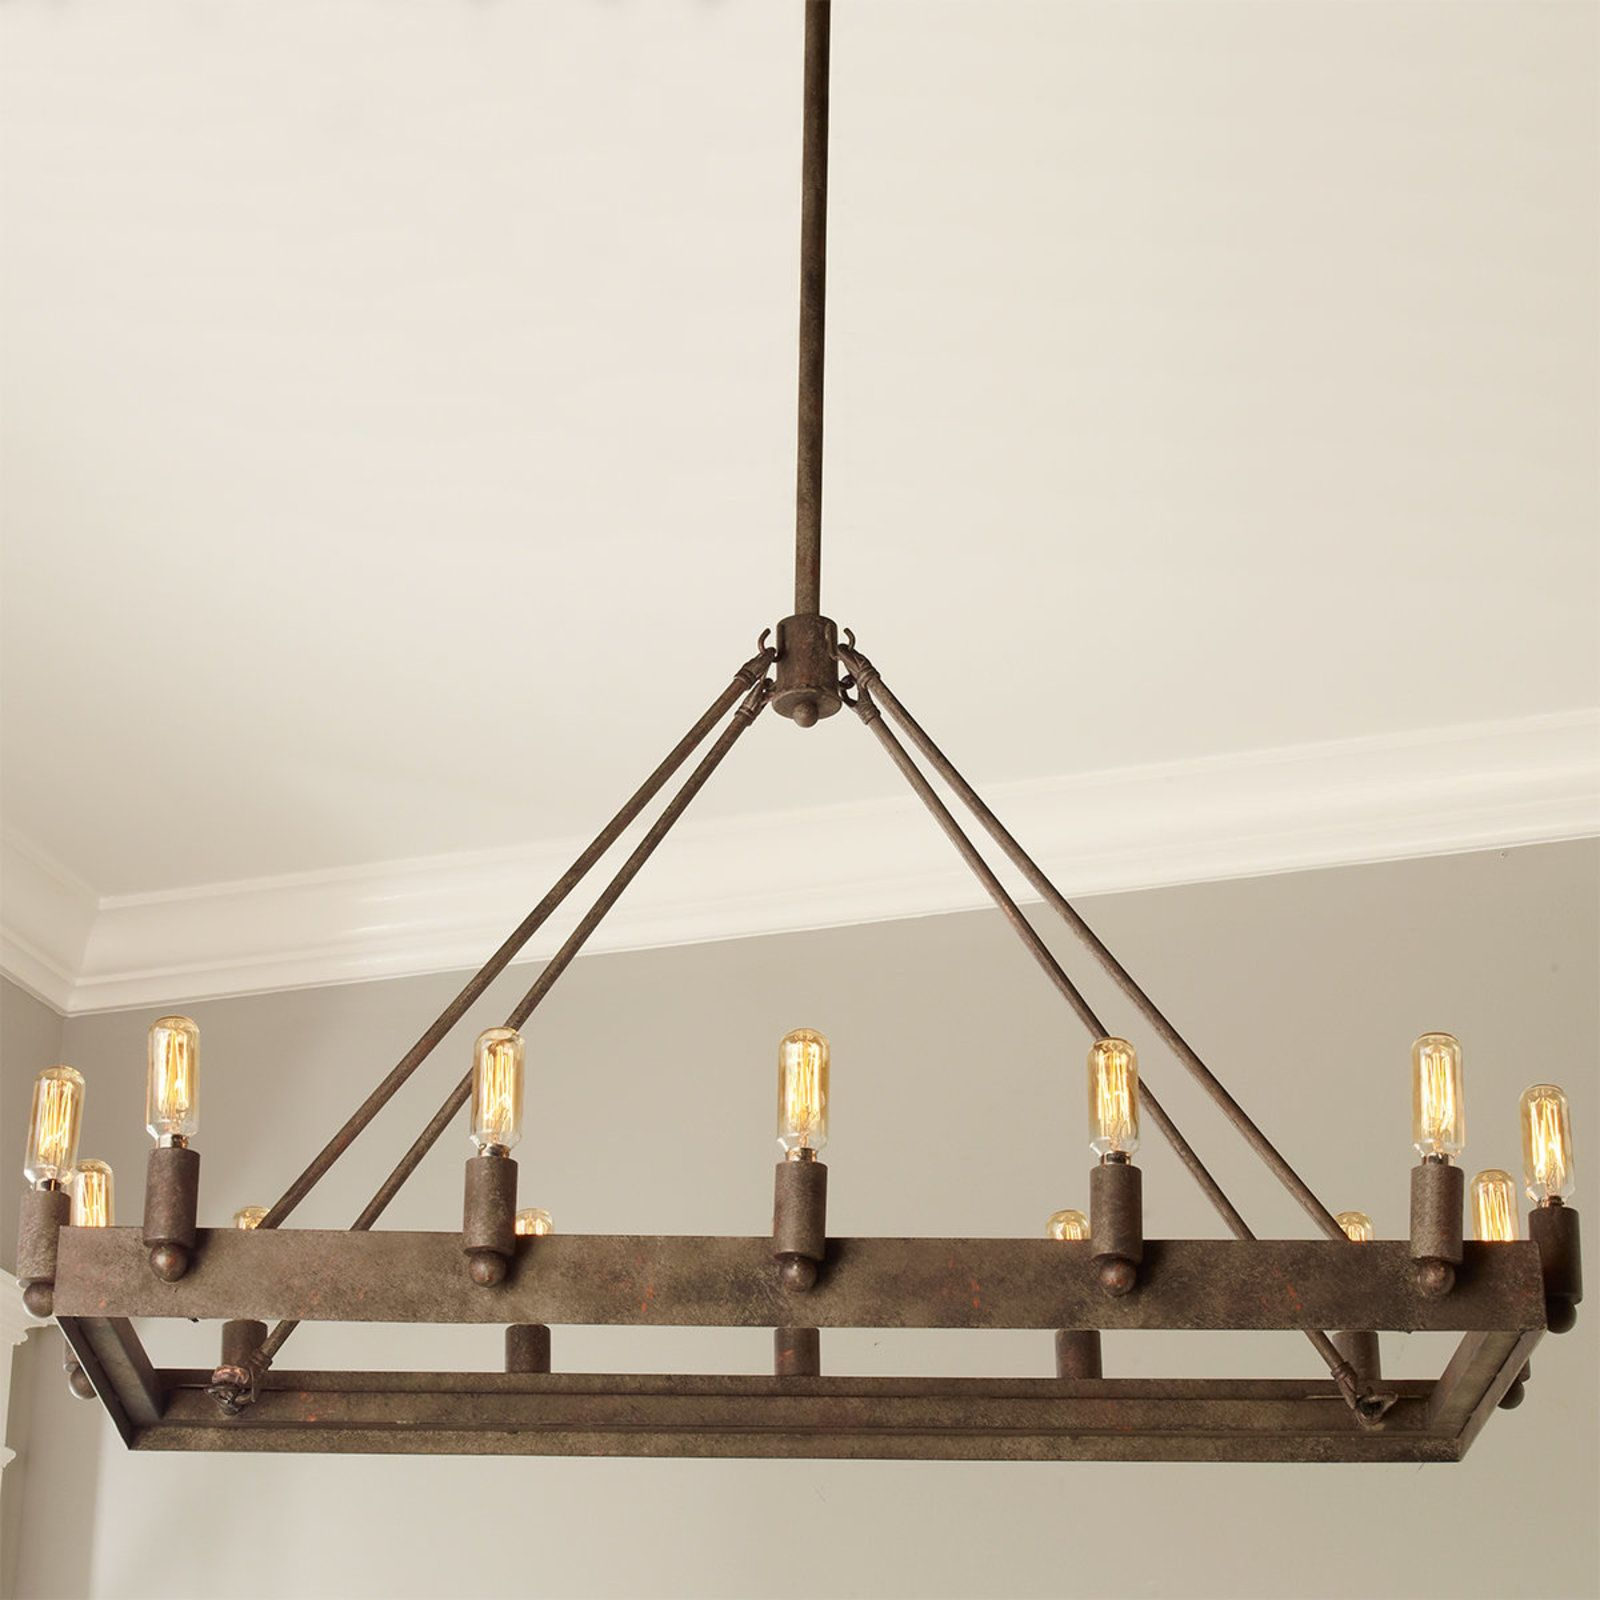 Urban Loft Industrial Rectangular Chandelier Rectangular Chandelier Chandelier Urban Loft